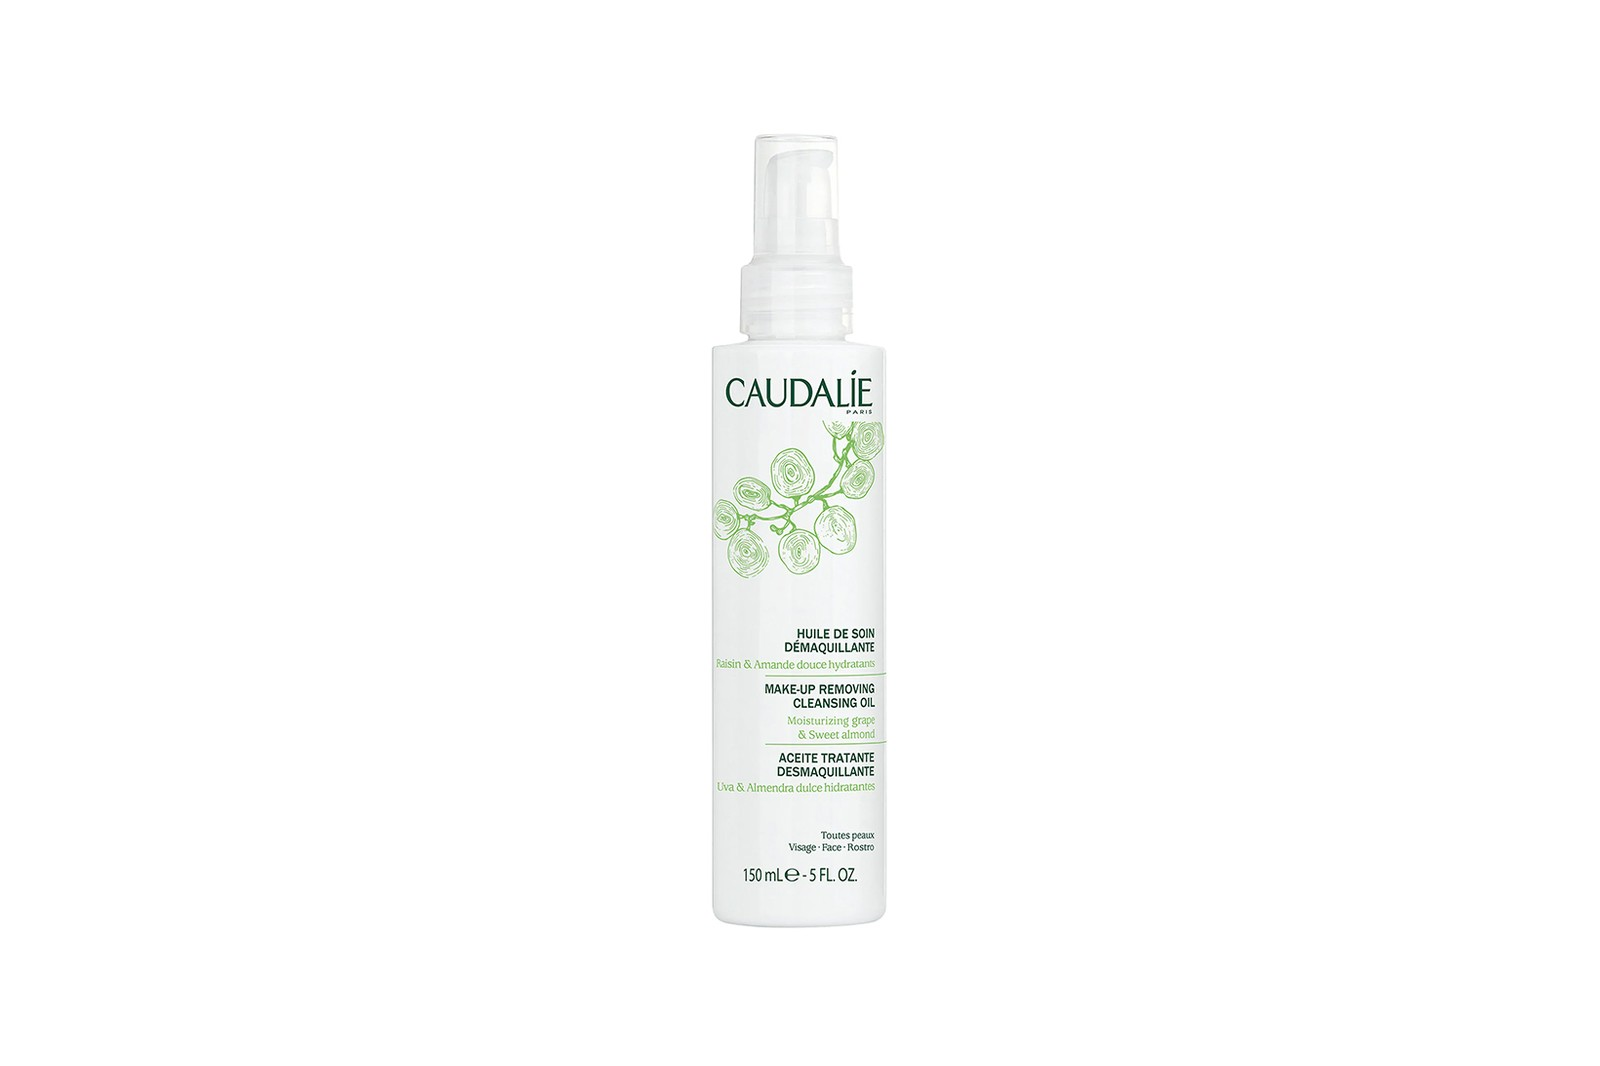 best skincare products invest beginners guide sephora caudalie clinique drunk elephant estee lauder oil water based cleanser moisturizer serums sunscreen